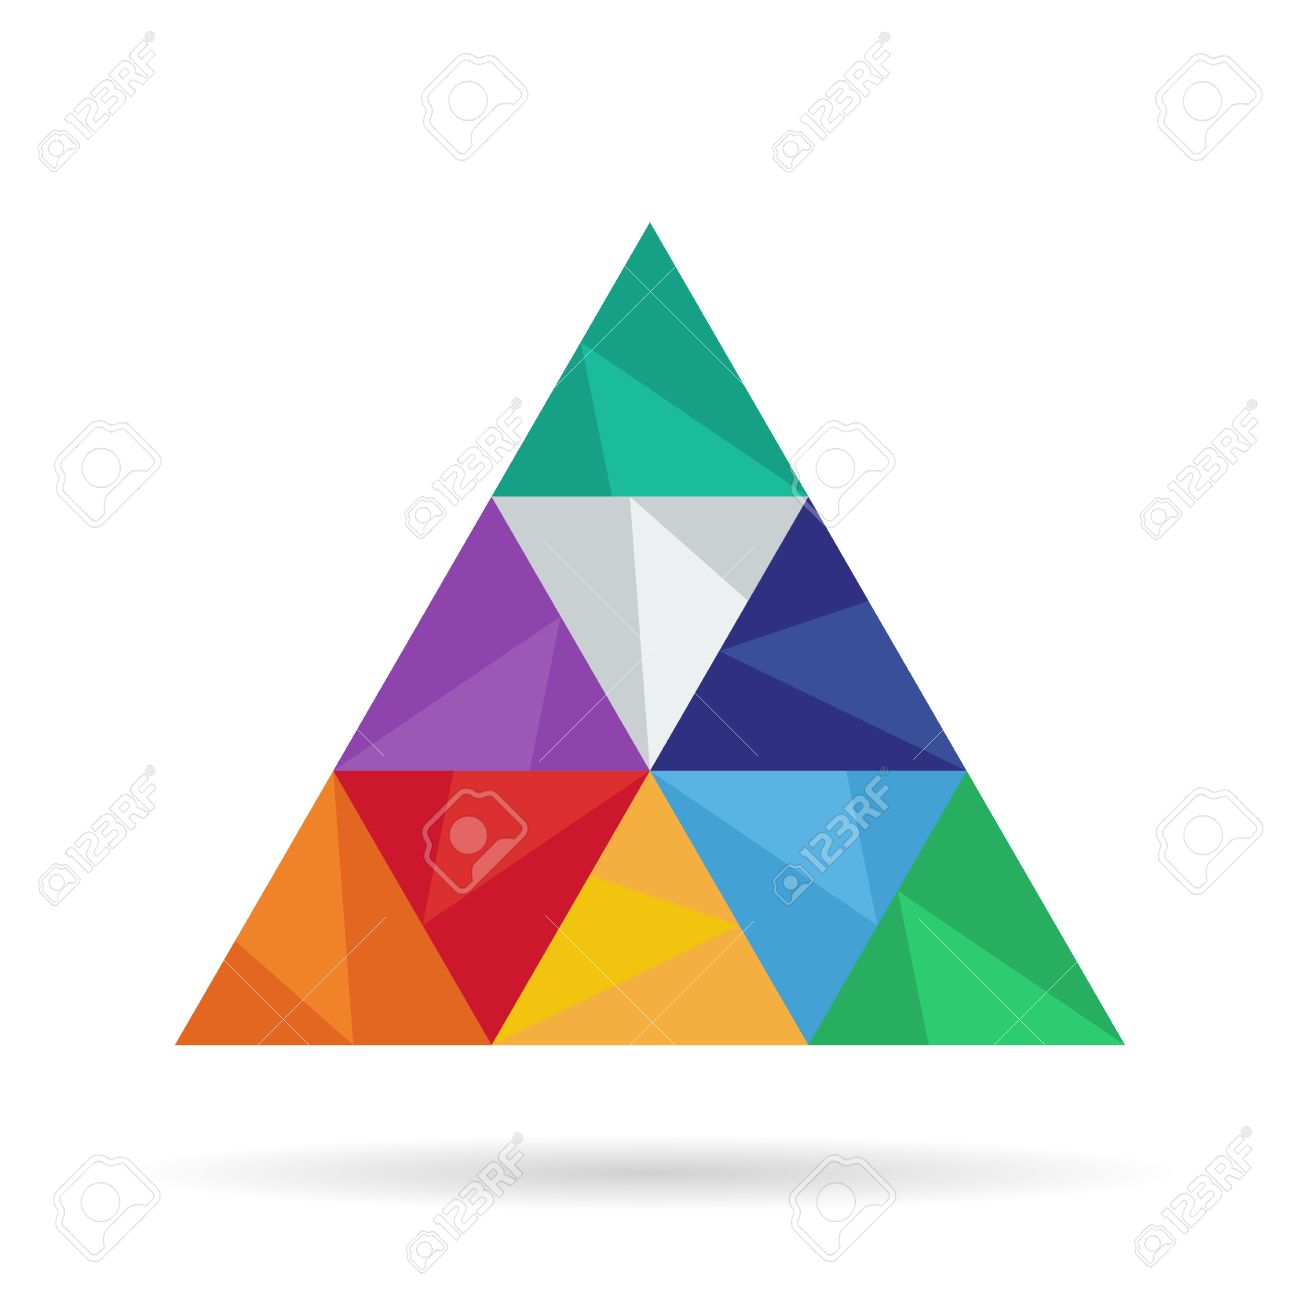 abstract background with triangular geometric shapes stylish